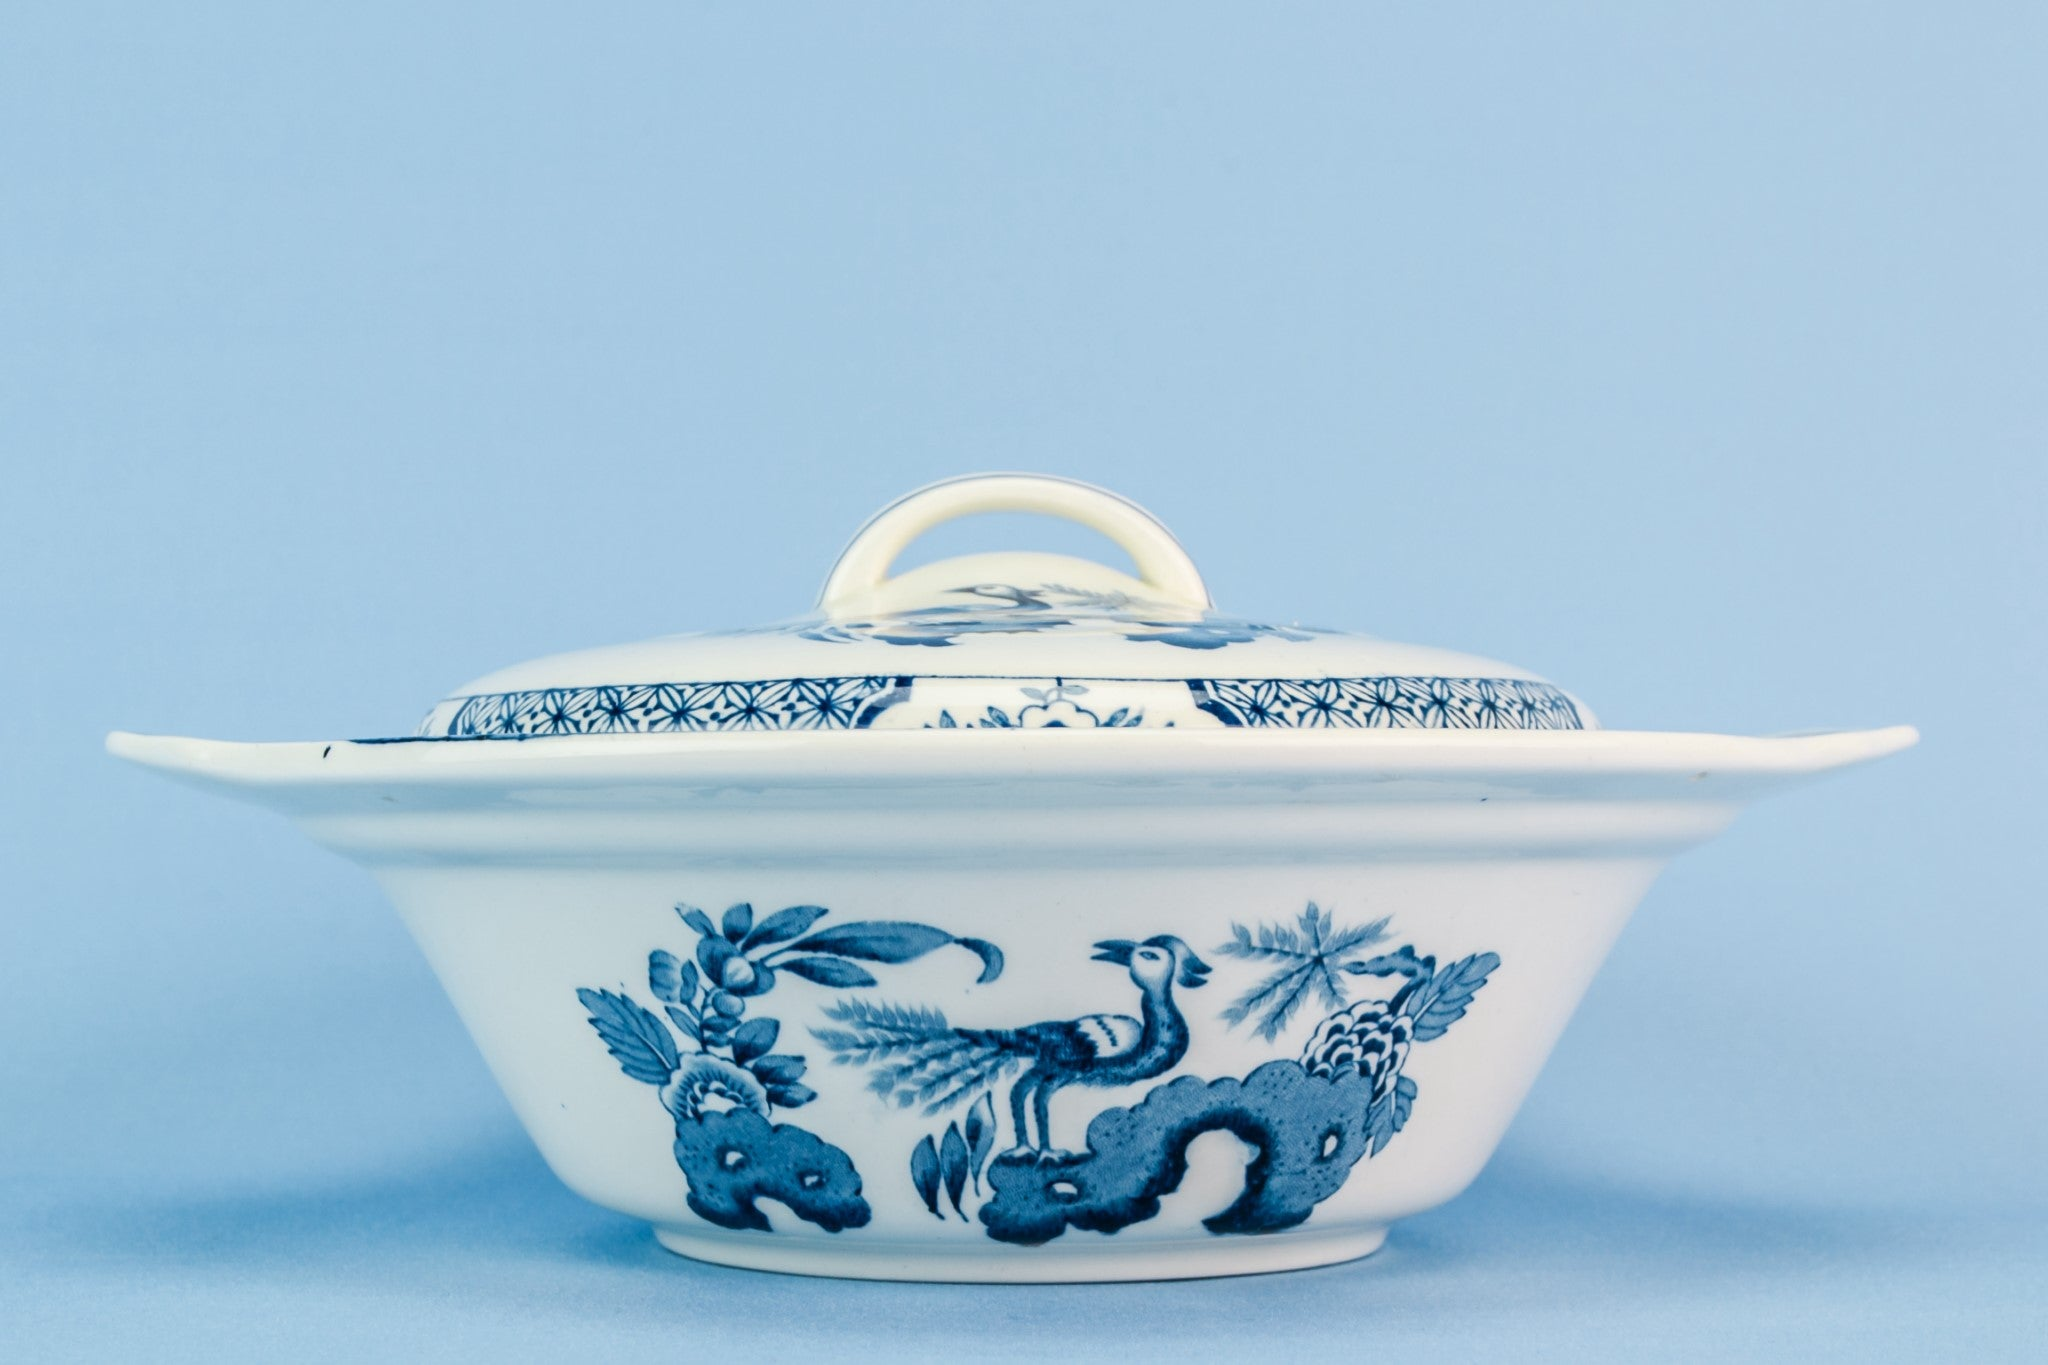 Wood & Sons pottery tureen